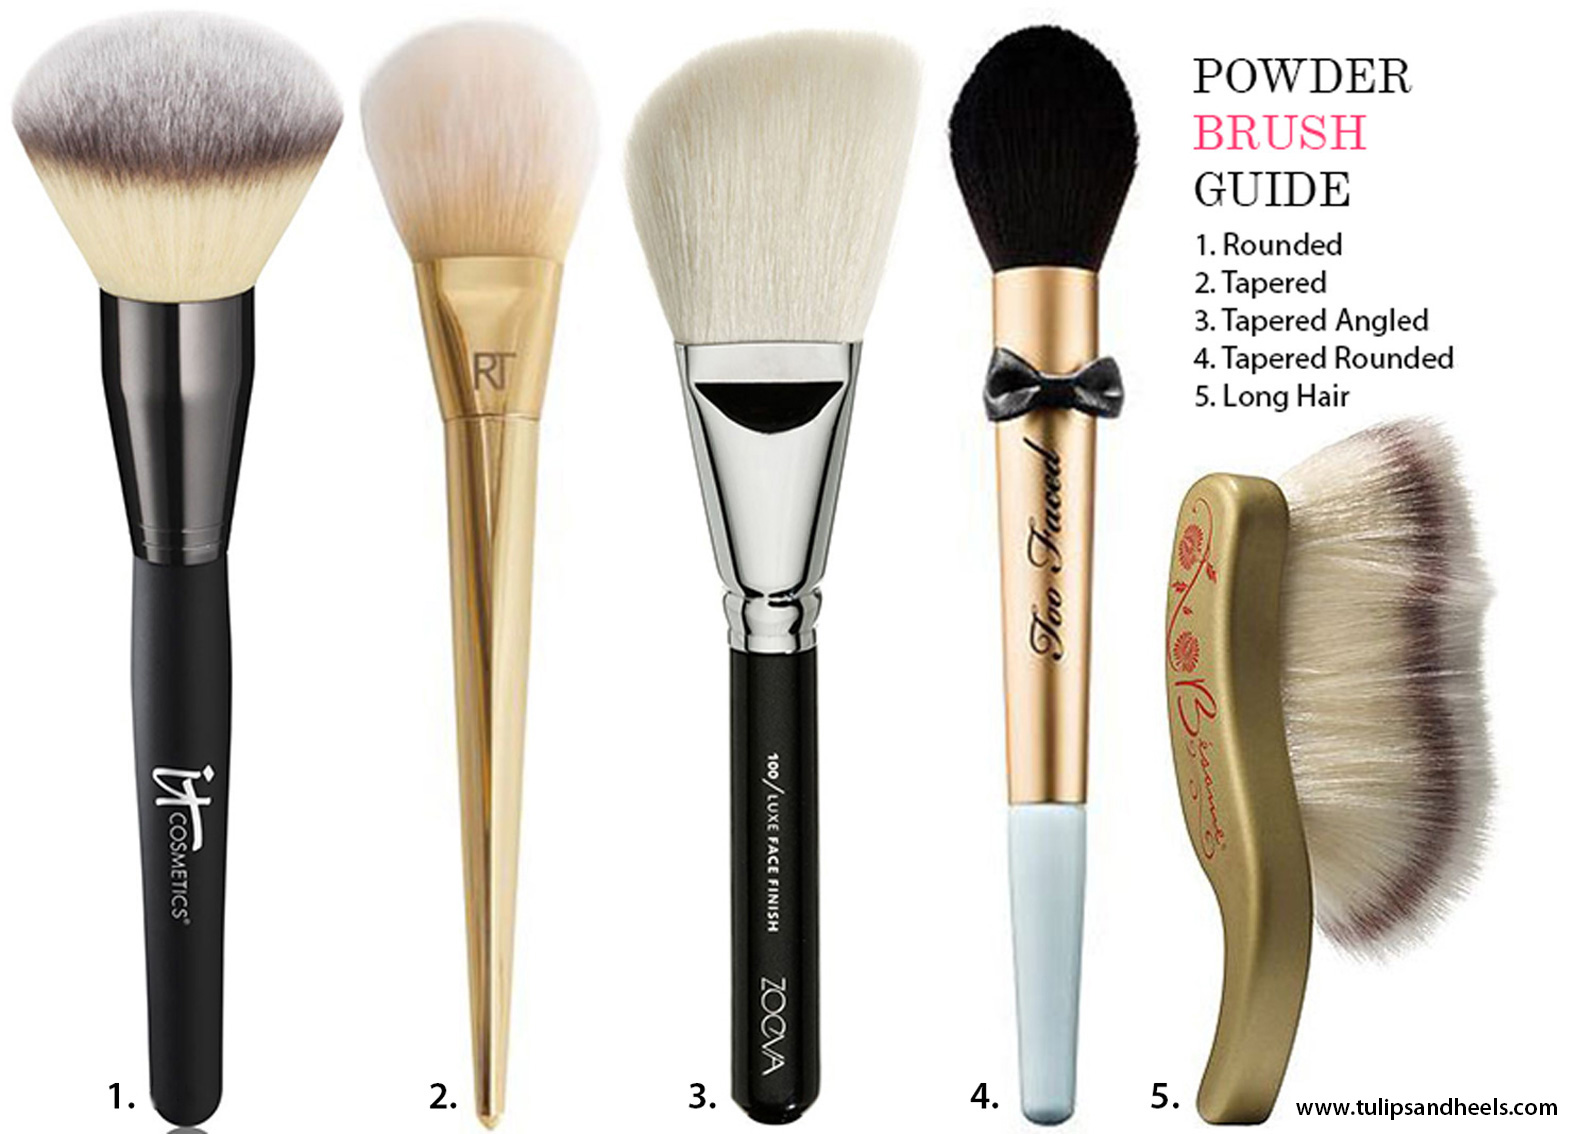 _powder_brush_guide_